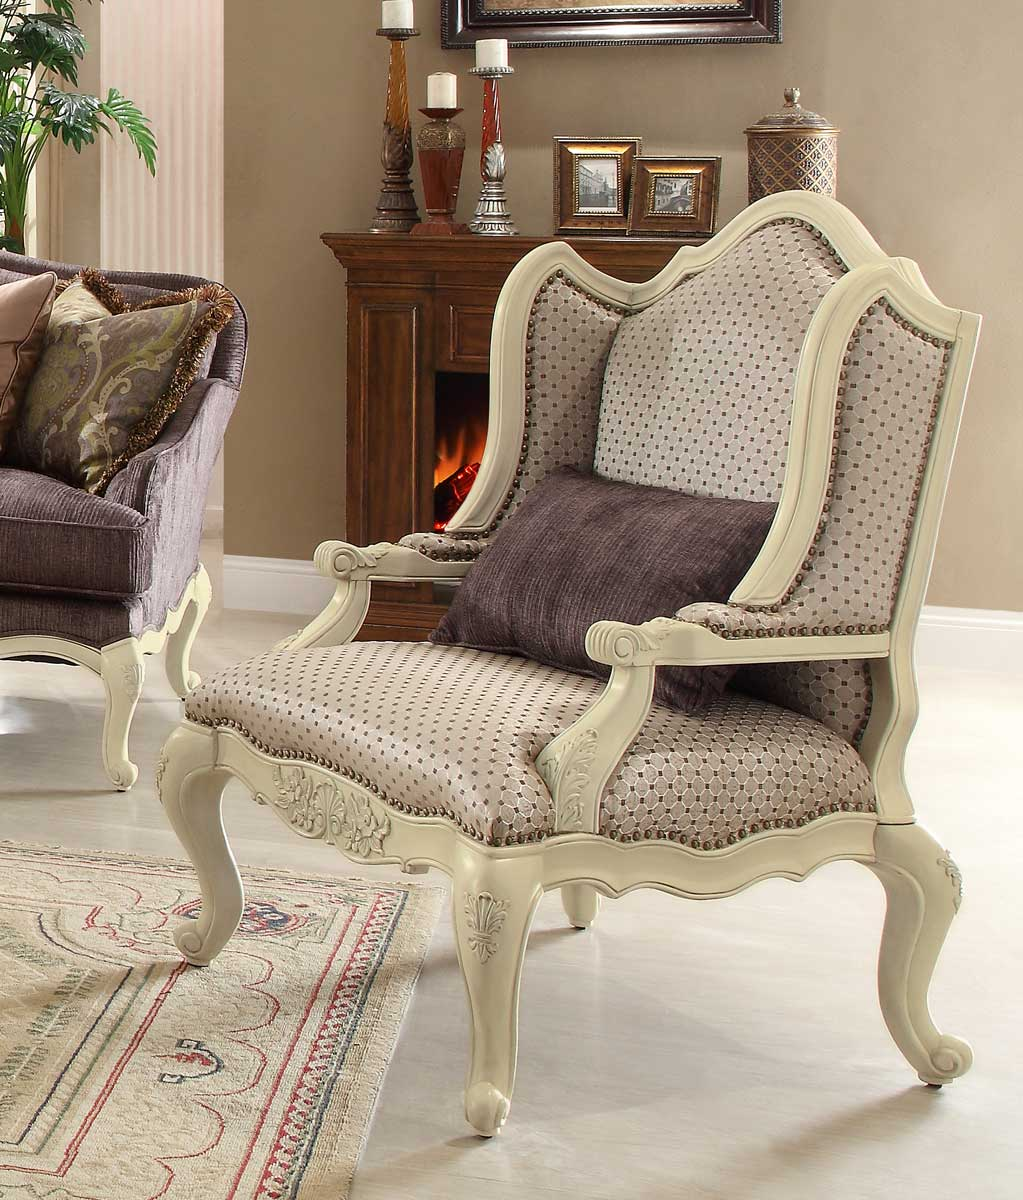 Homelegance Casanova II Accent chair - Antique White